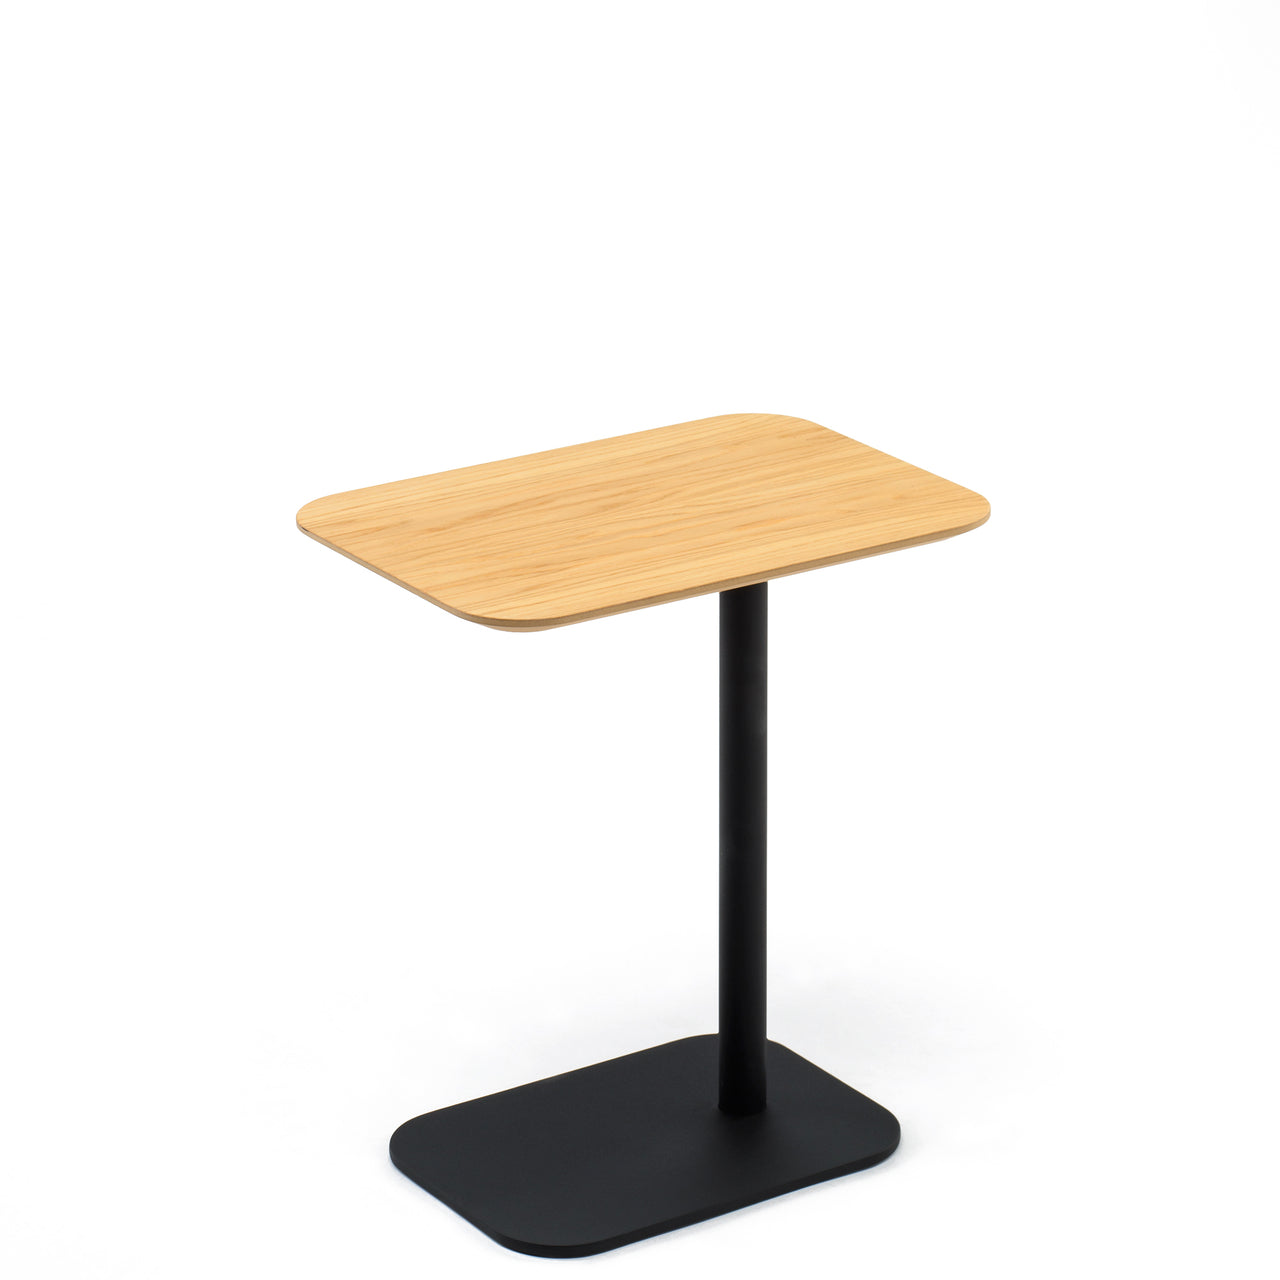 MG Side Tables: MG 1